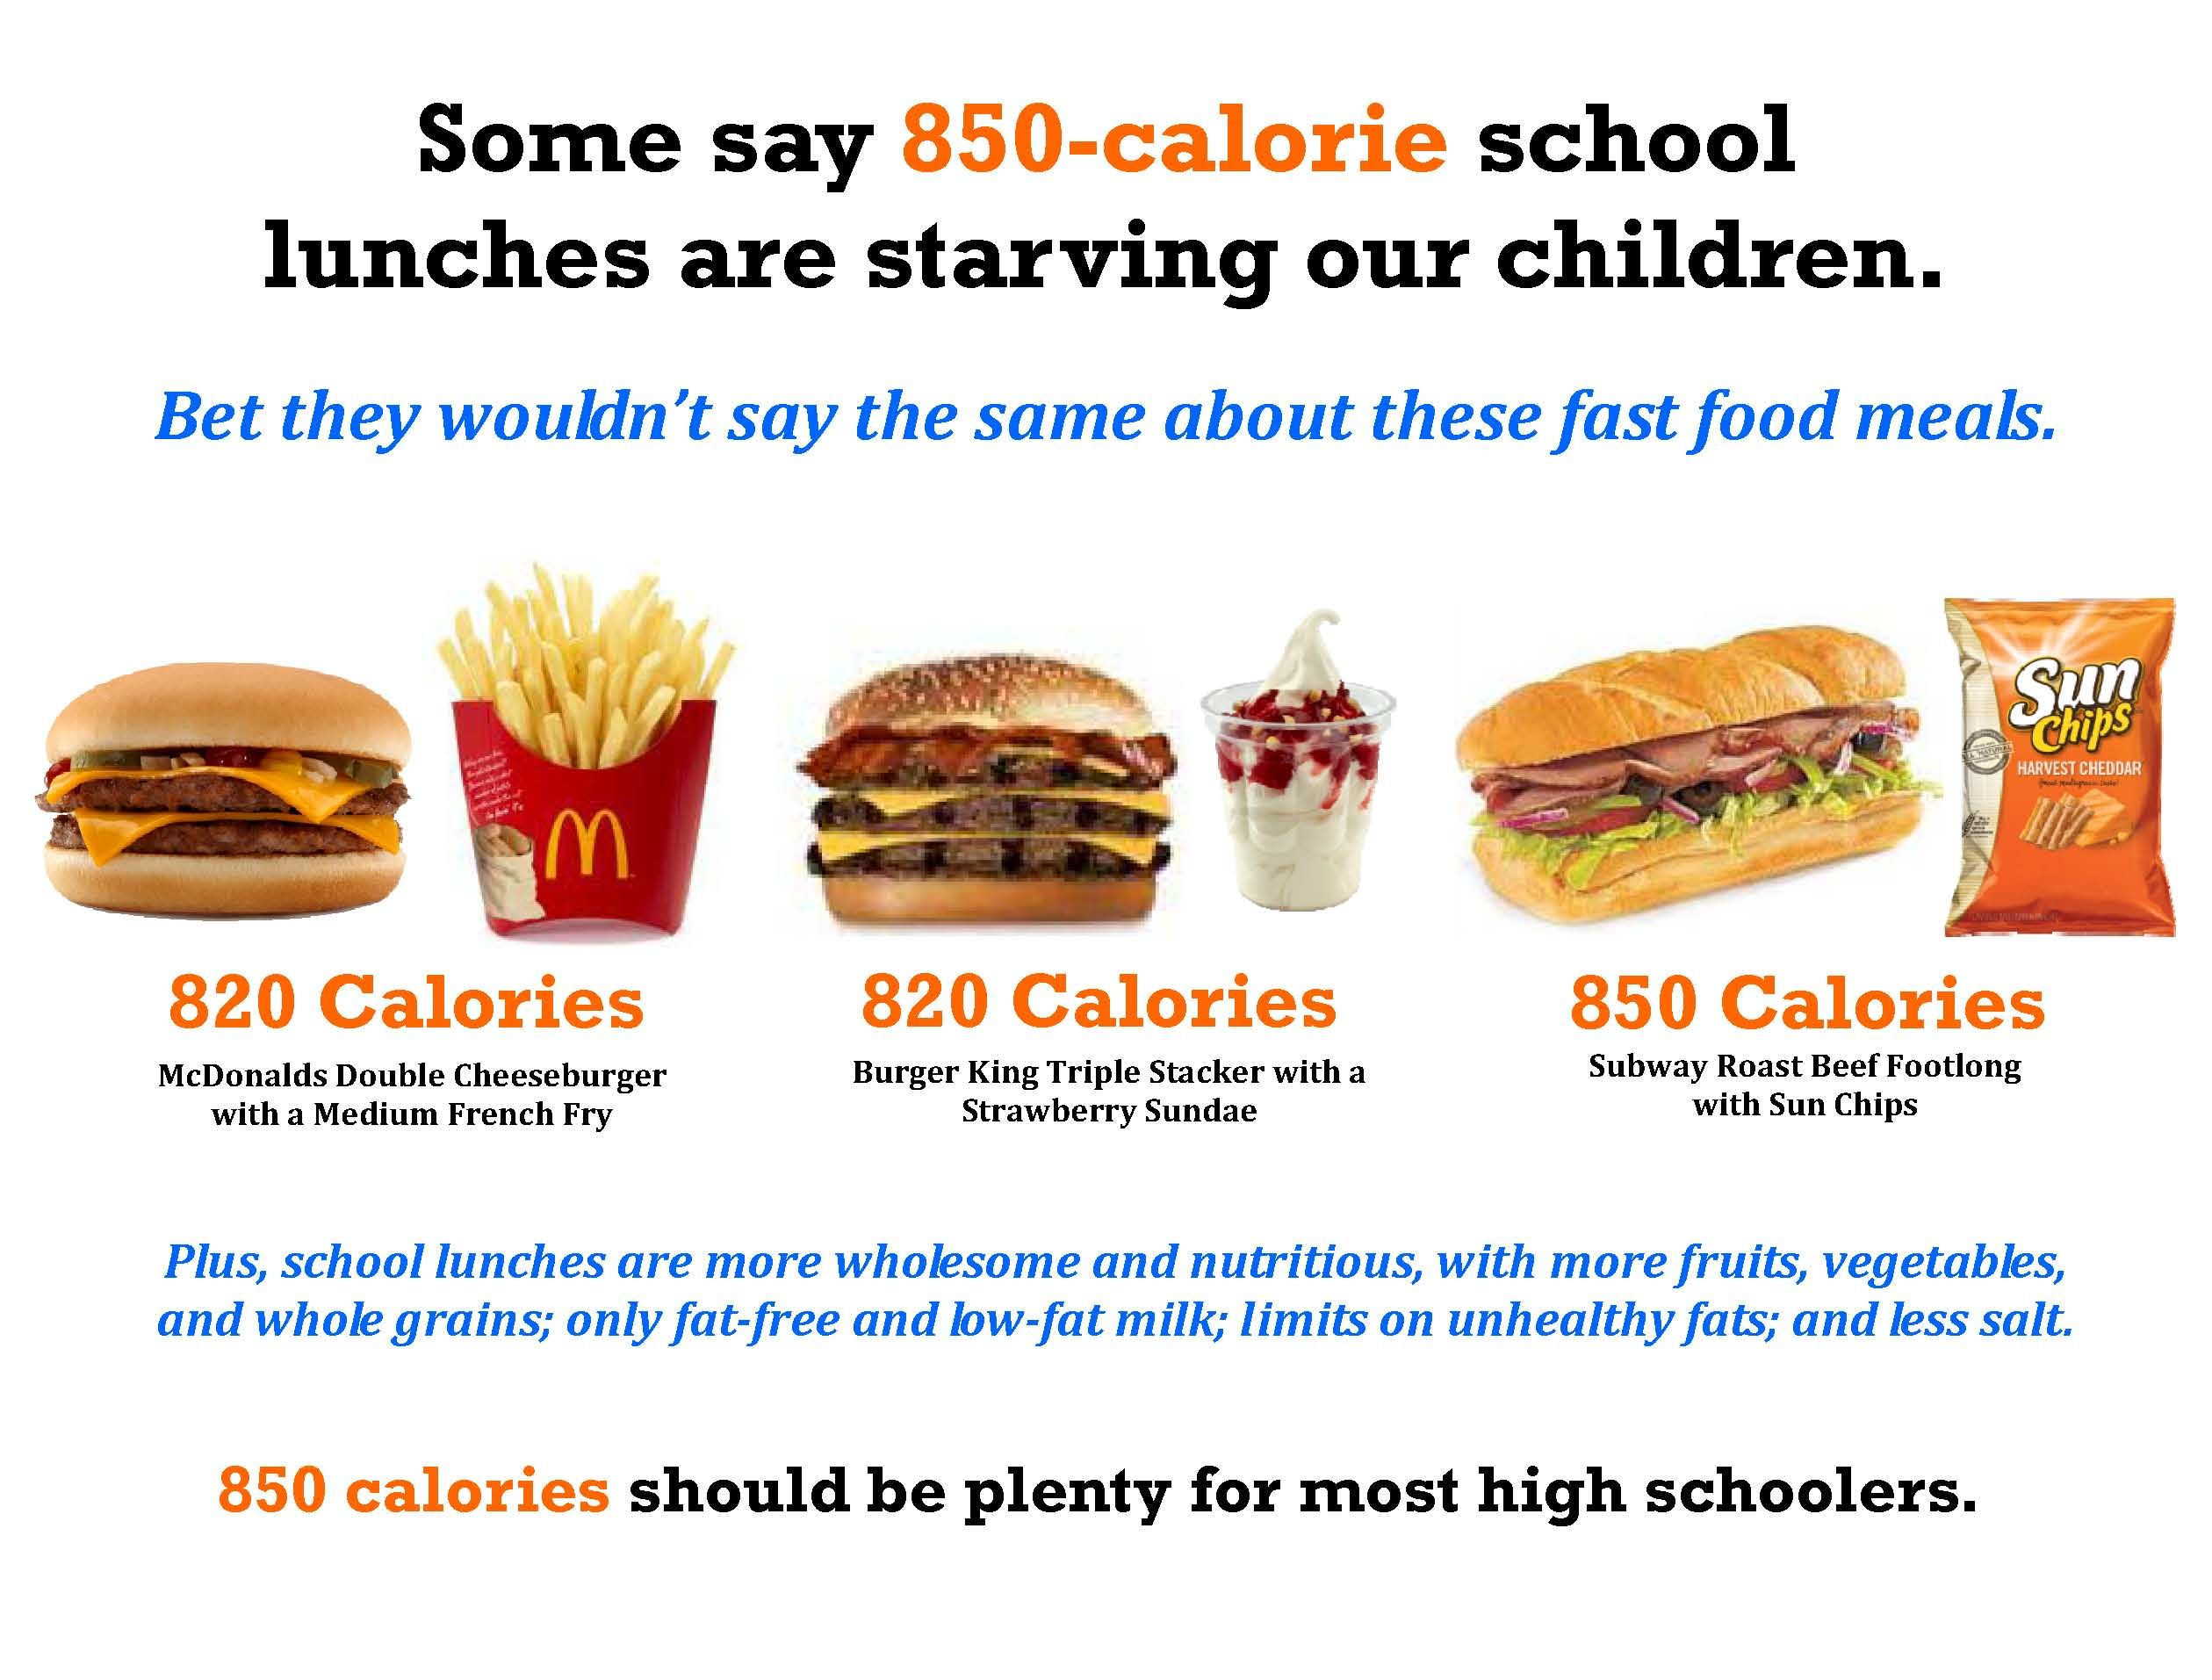 Seems 850 Calories Should Be Plenty For Most High